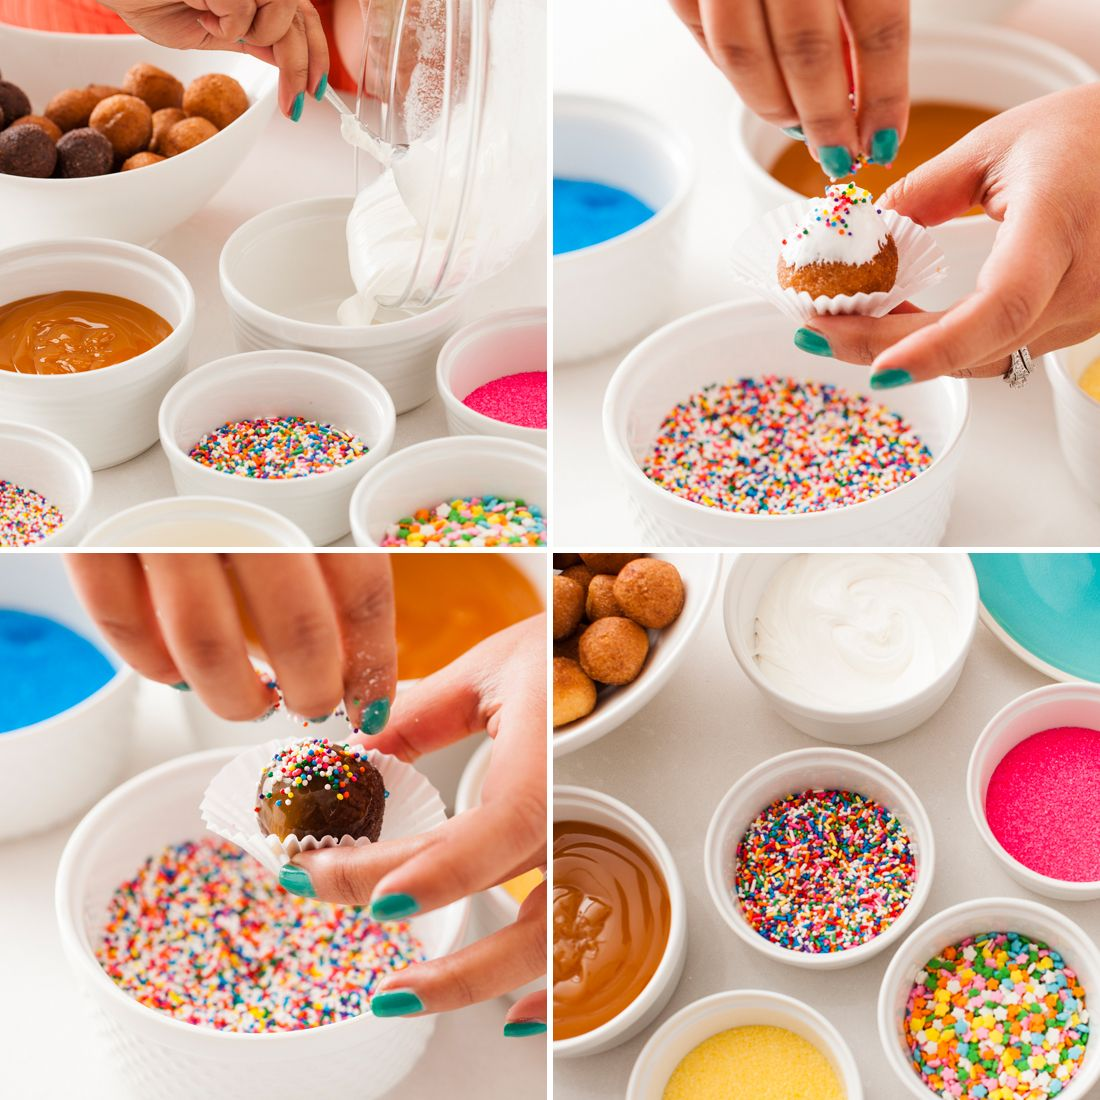 how to use donut hole pan